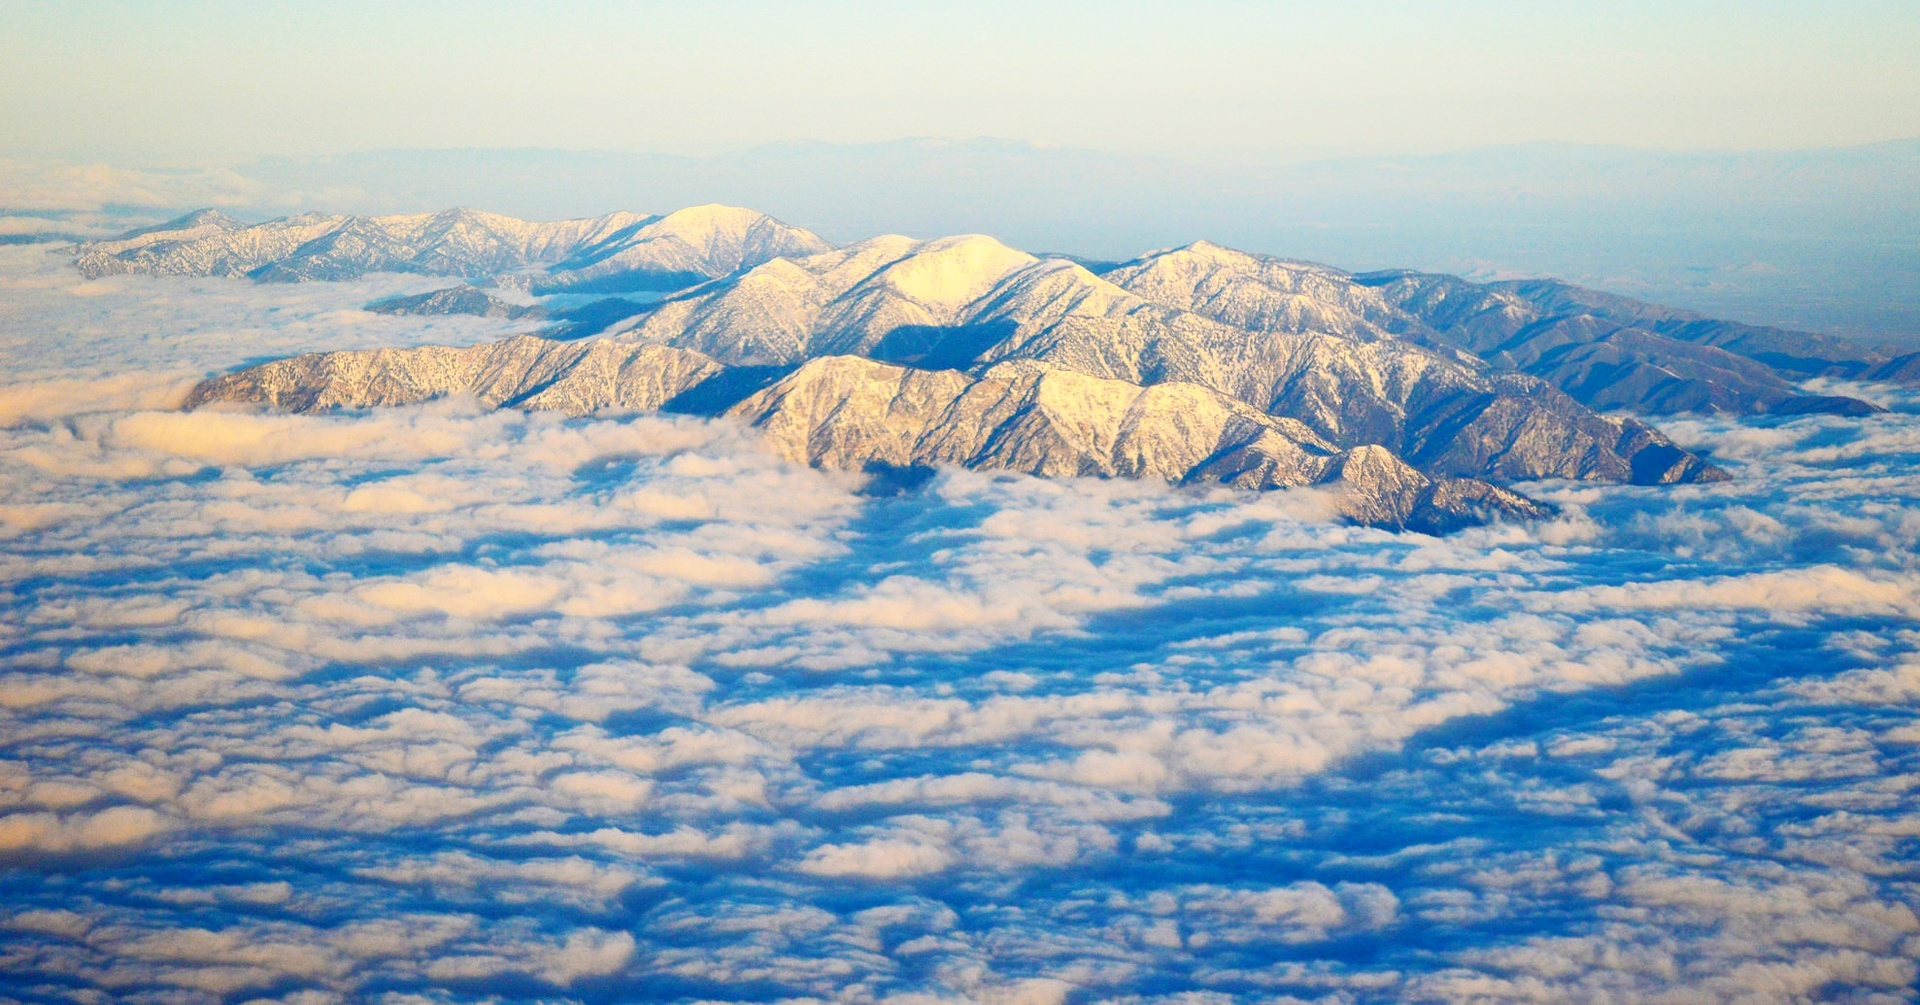 cloud island. mountain above the clouds